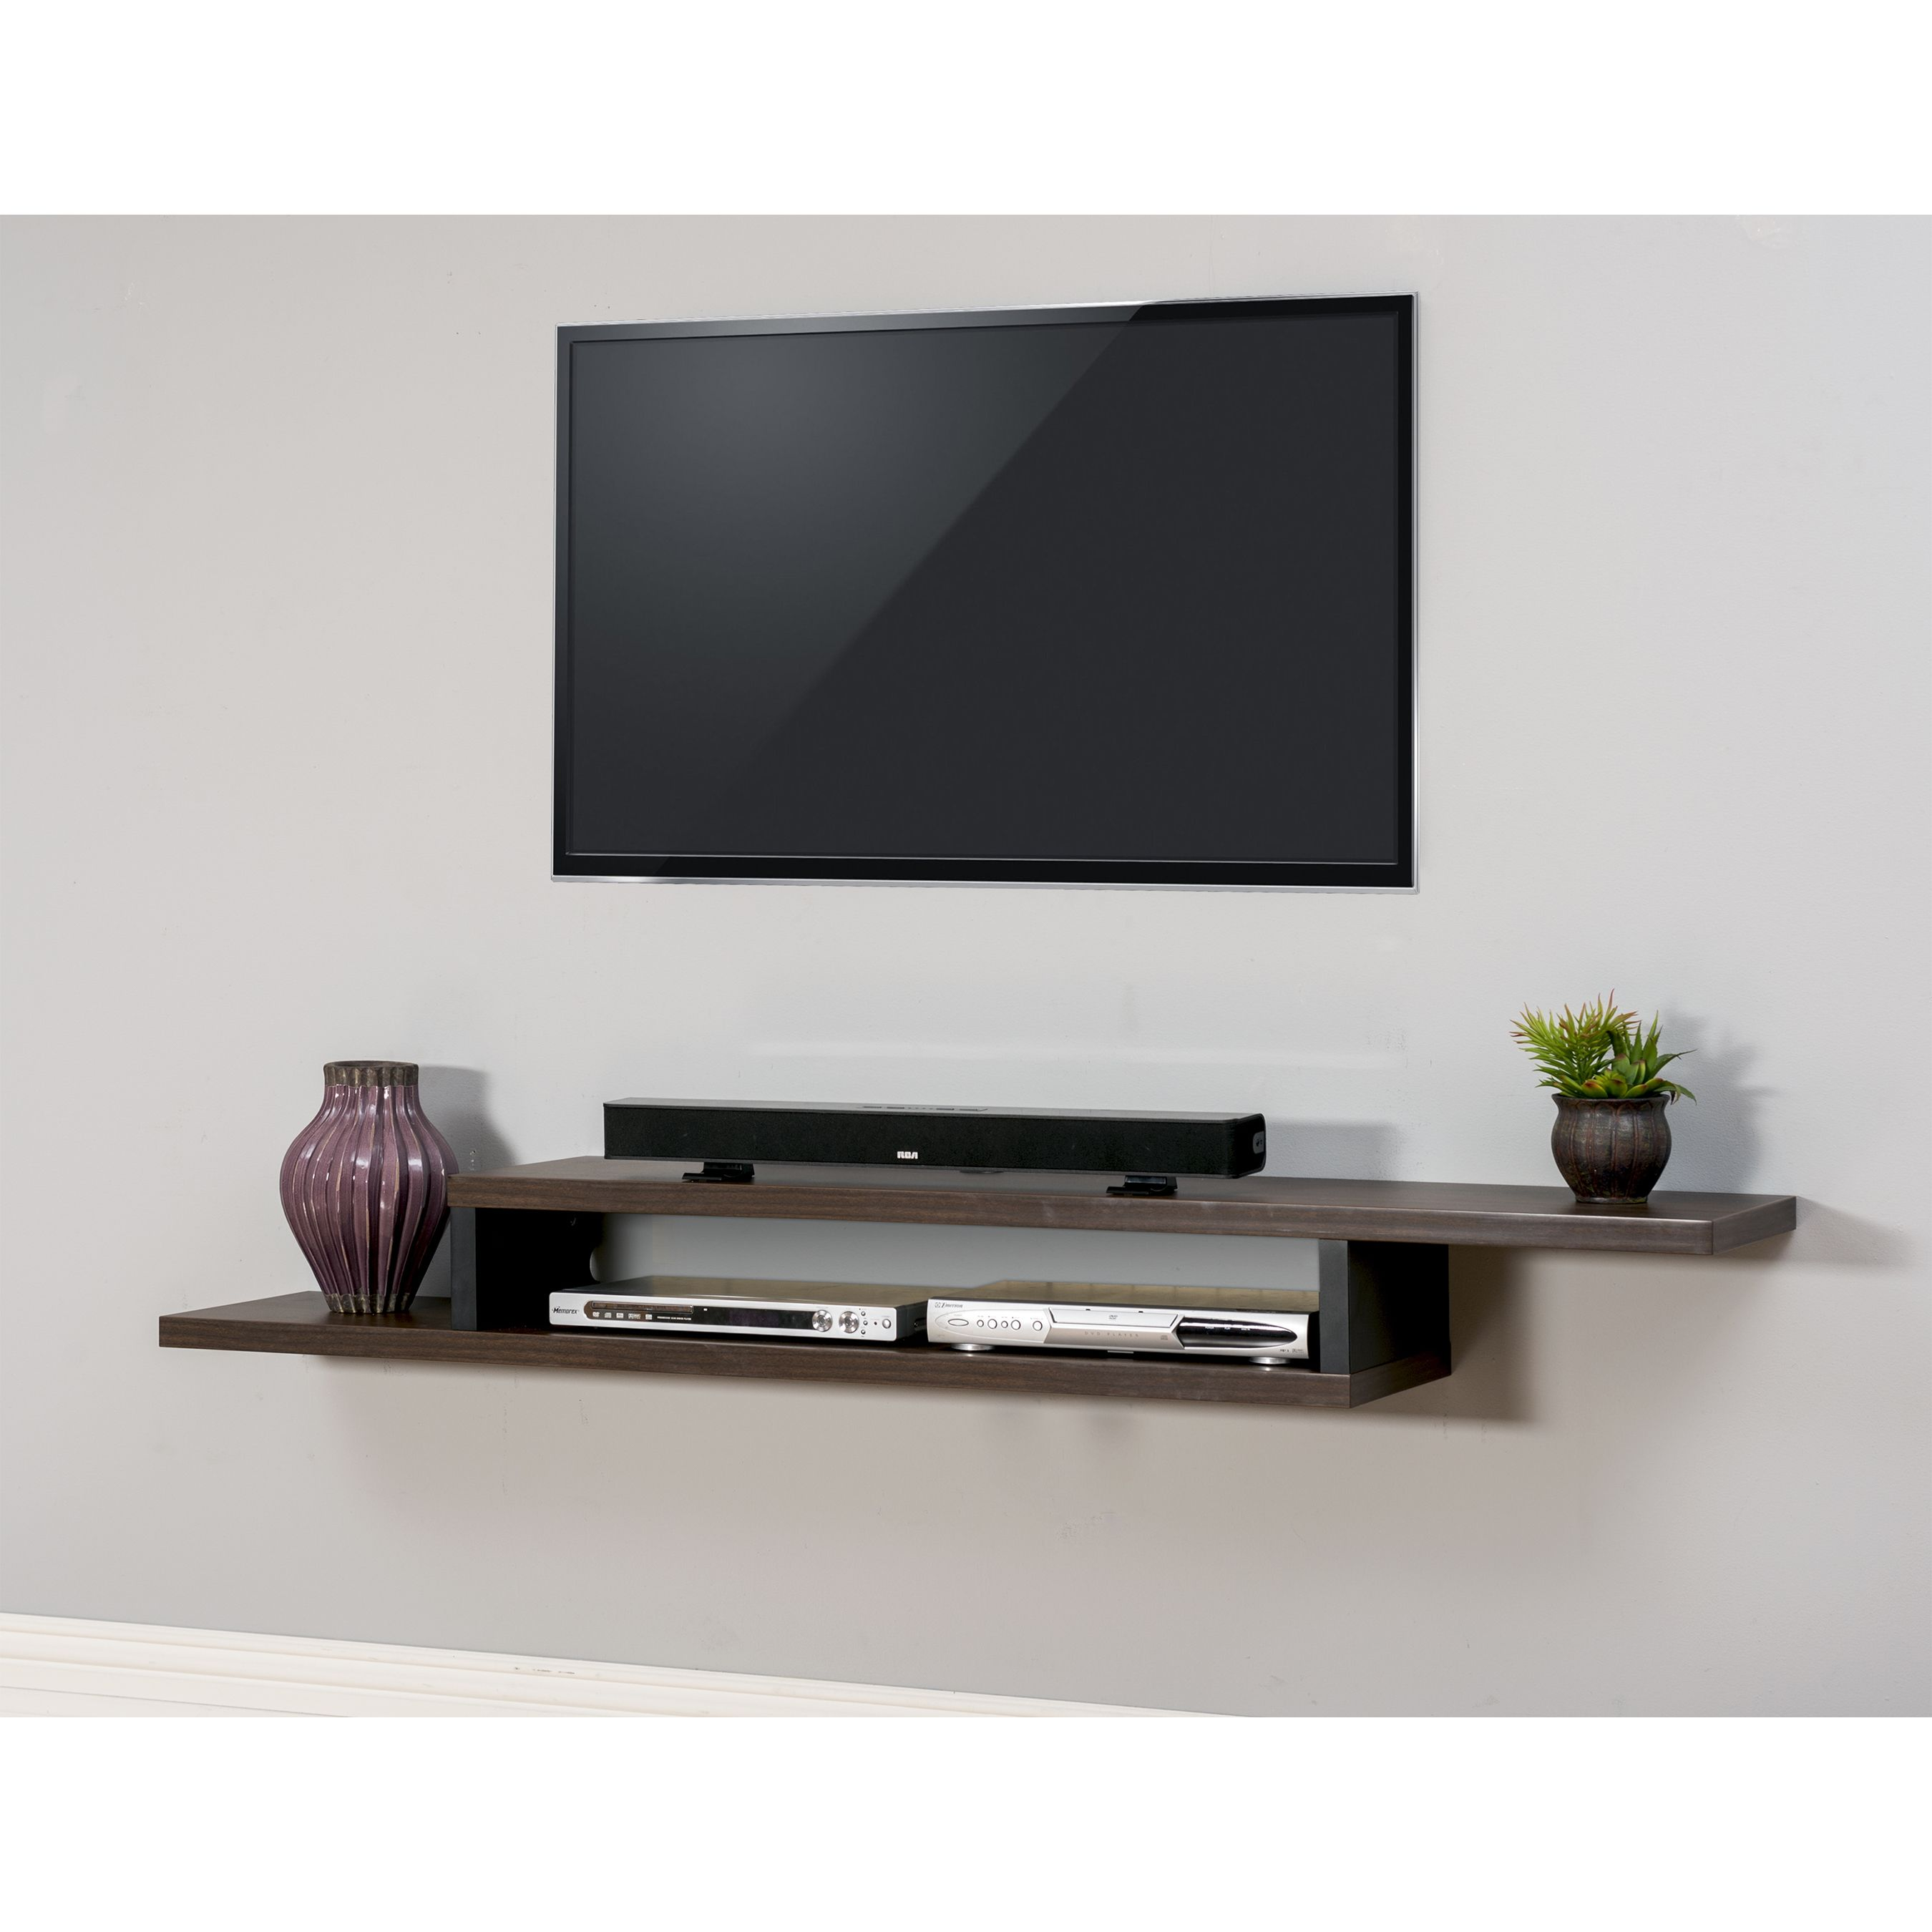 This wall mounted tv console has a modern flair with the this wall mounted tv console has a modern flair with the appearance of a floating shelf amipublicfo Choice Image